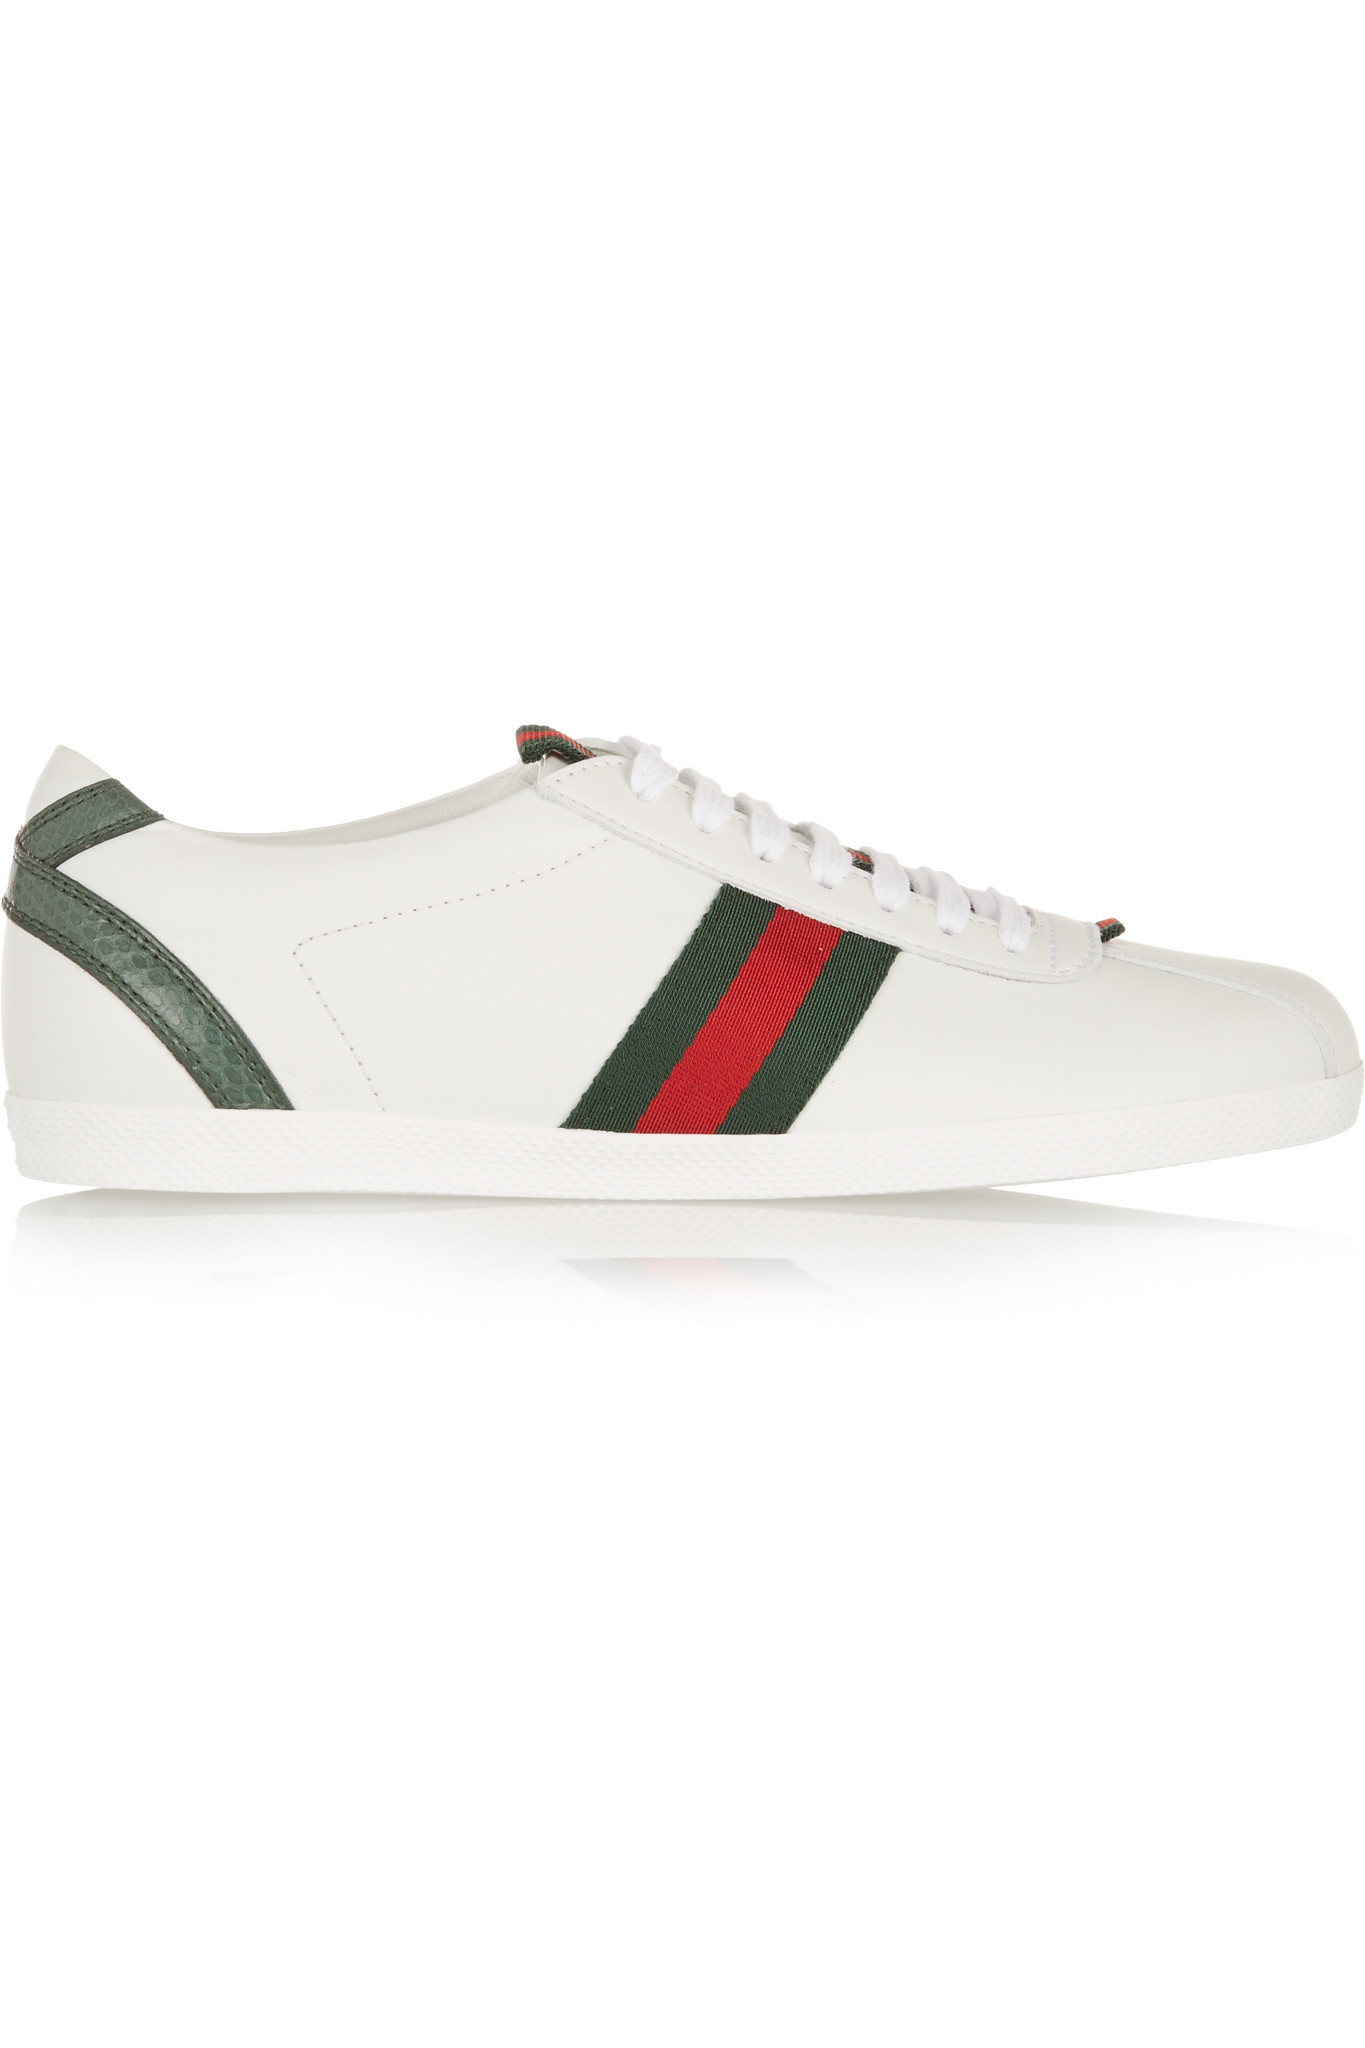 e5af59a5eba Lyst - Gucci New Ace Watersnake-trimmed Leather Sneakers in White